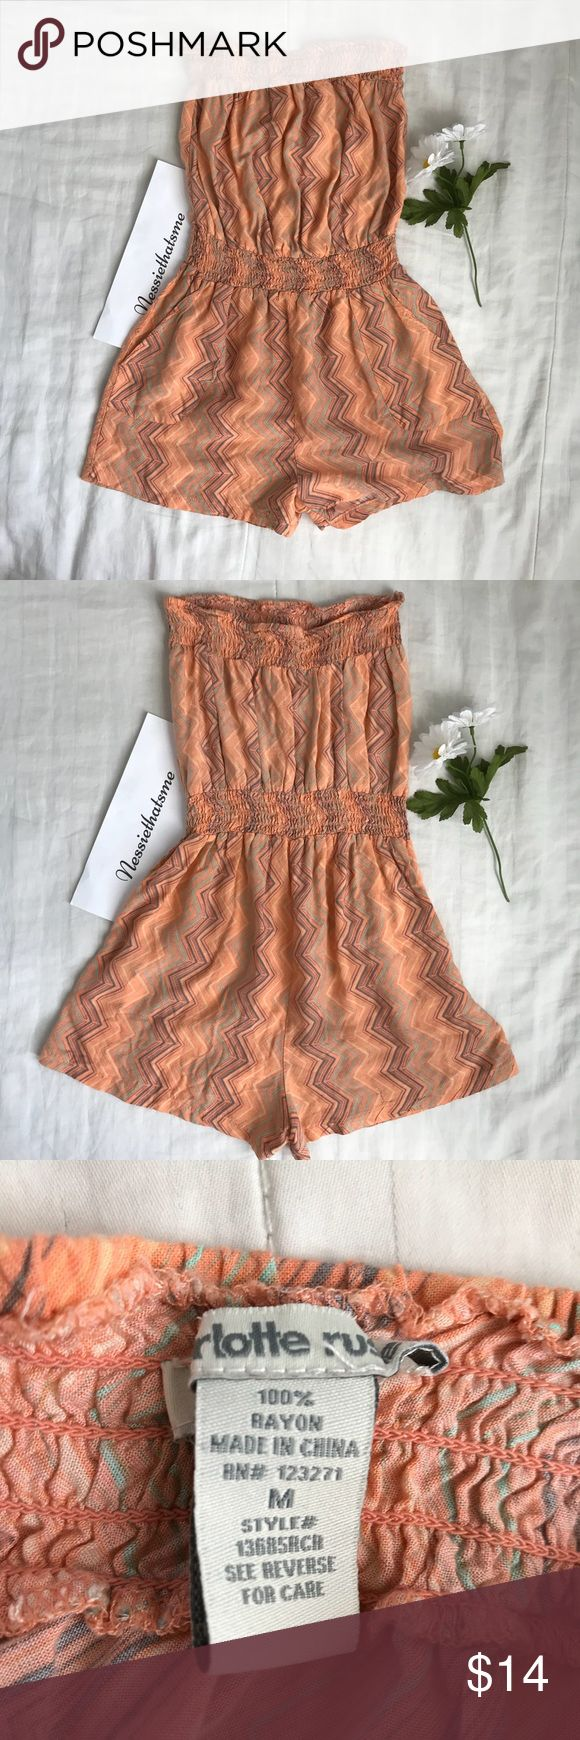 Charlotte Russe Peach Strapless Romper Peach strapless romper with zig zag printing. Ask for measurements if needed :) 🌼 Charlotte Russe Dresses Strapless